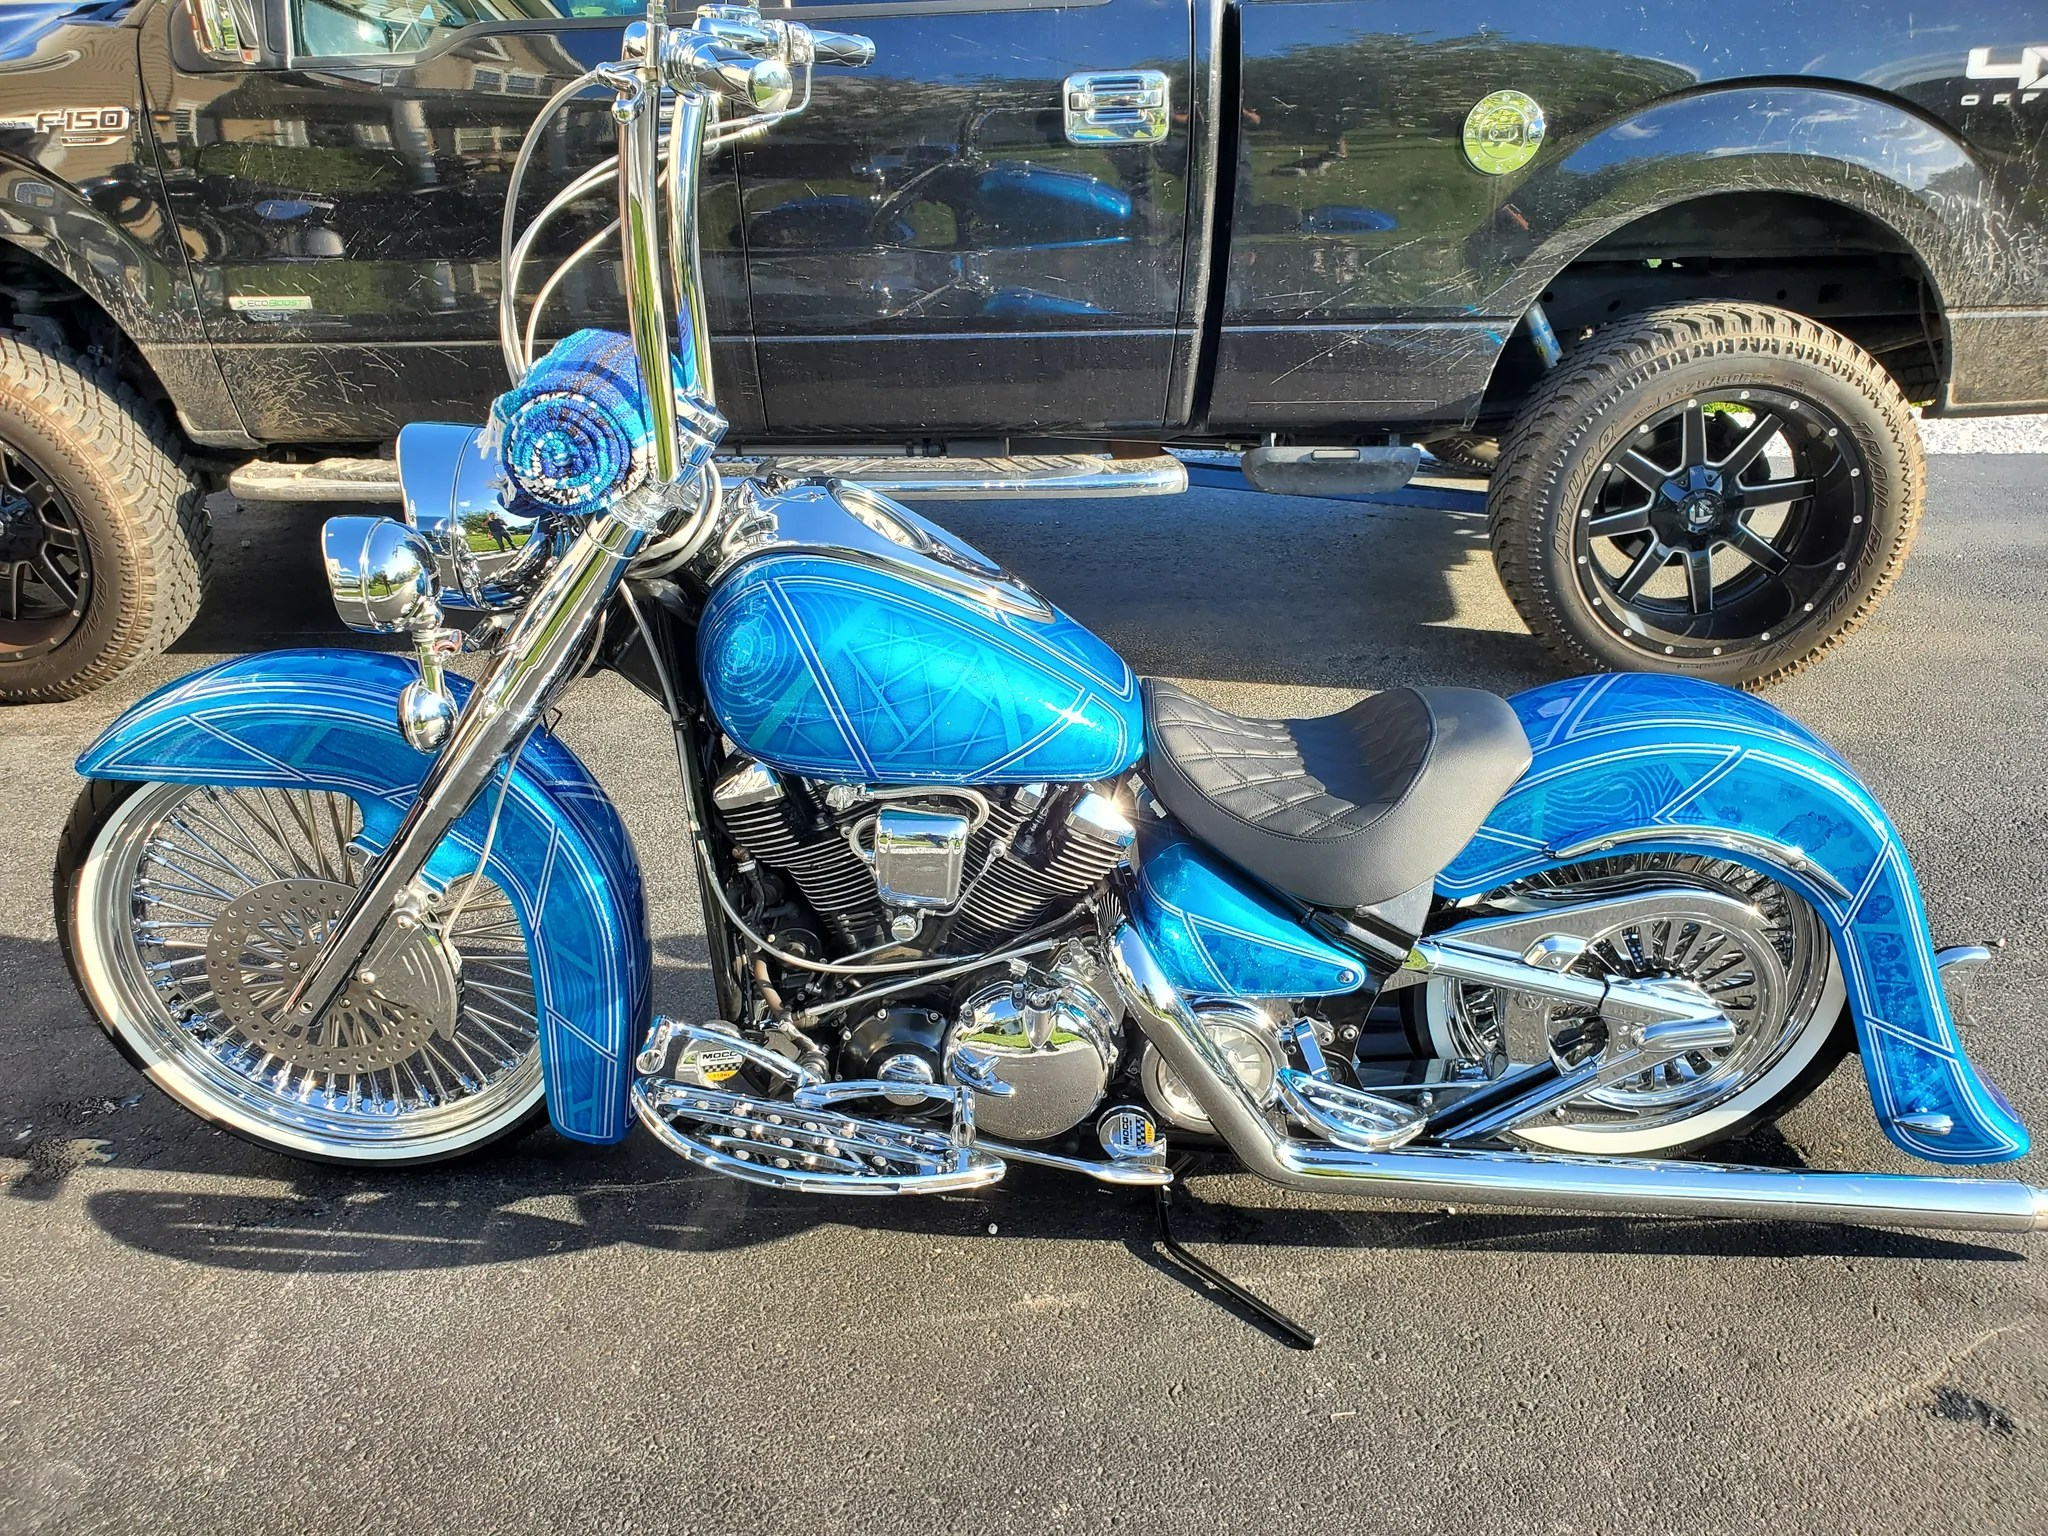 yamaha road star center stand for dual exhaust